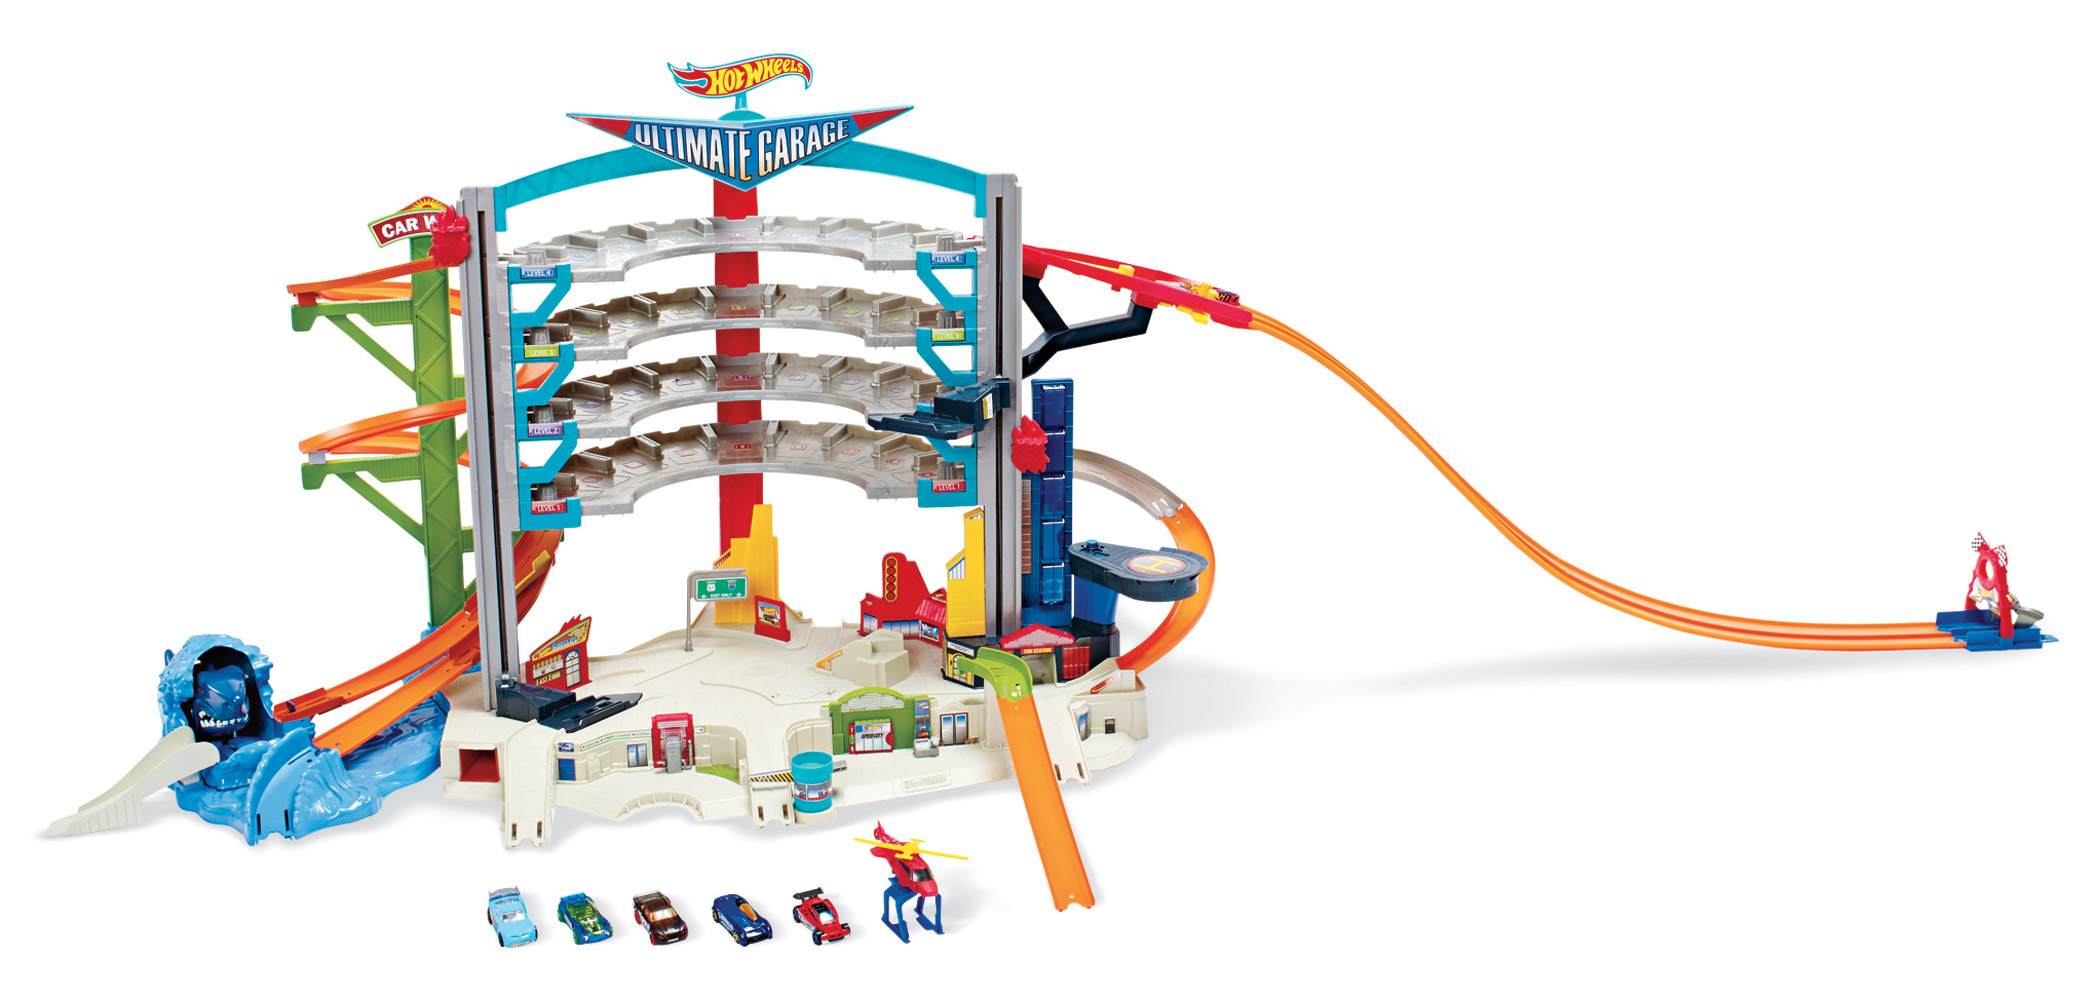 The Good Housekeeping Toy Awards Best Toys for the Holidays 2015